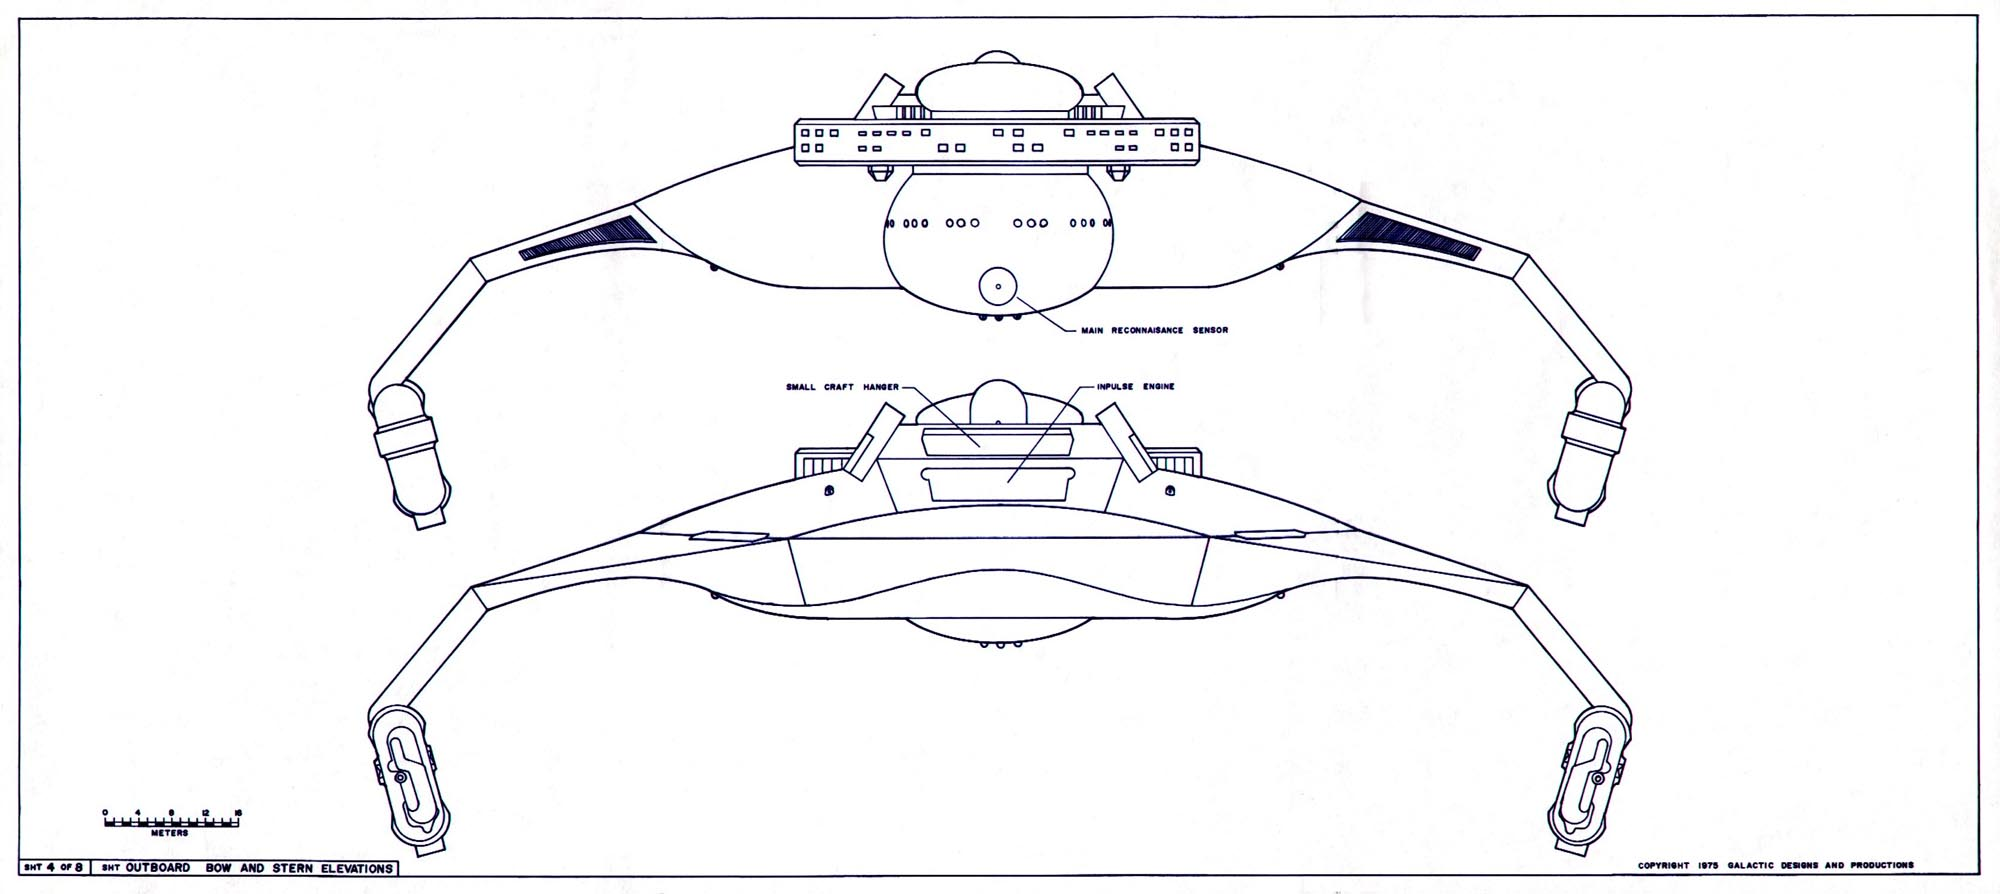 fuse box diagram together with range rover fuse box diagram on 2008